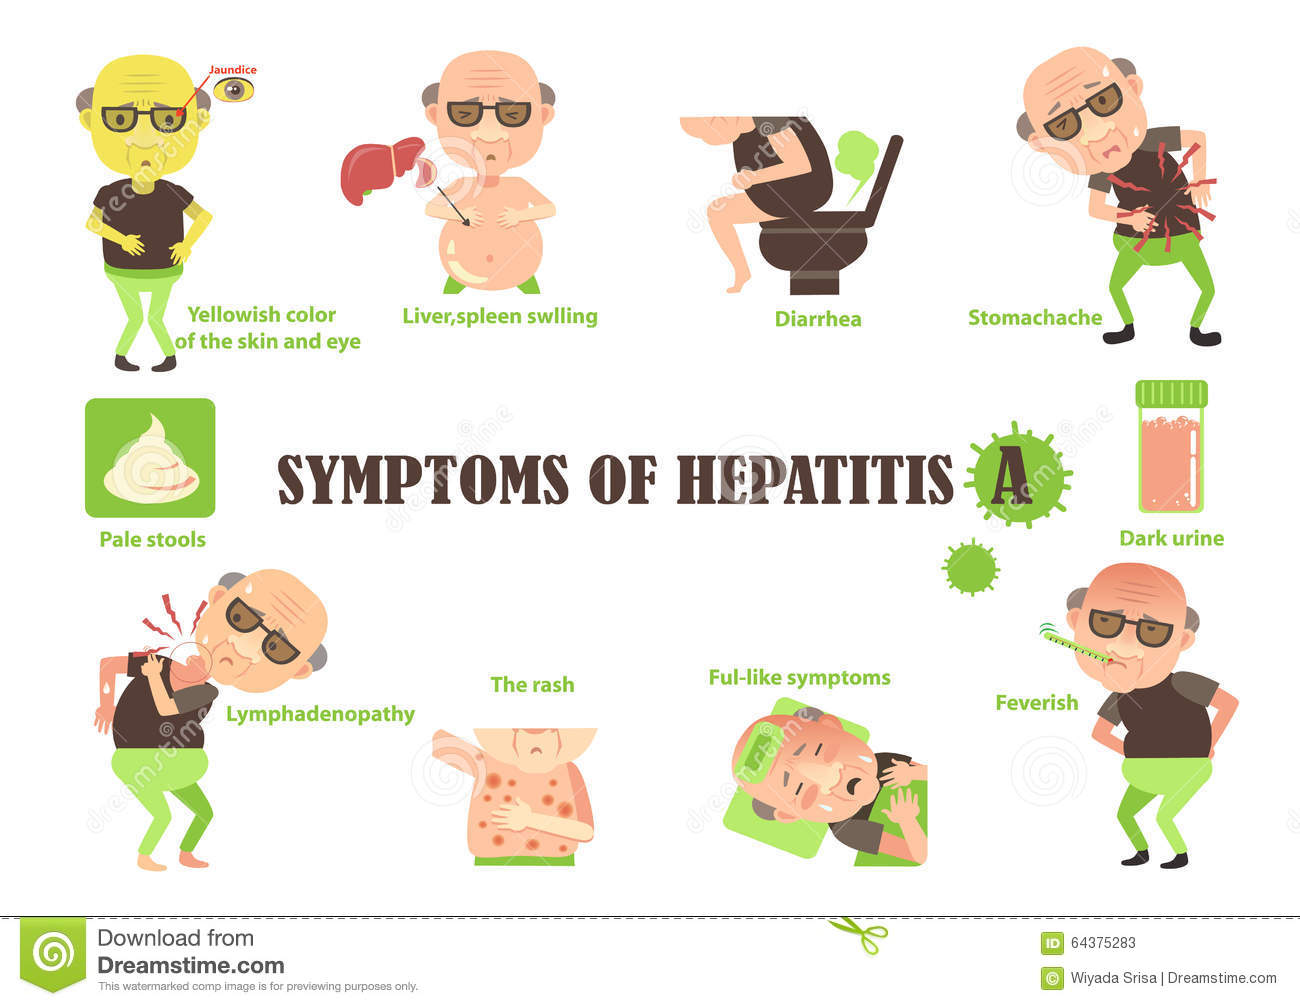 the spread of virus and main symptoms of hepatitis a Hepatitis a prevention four persons infected with hepatitis a virus have symptoms person who has no symptoms can still spread the virus.